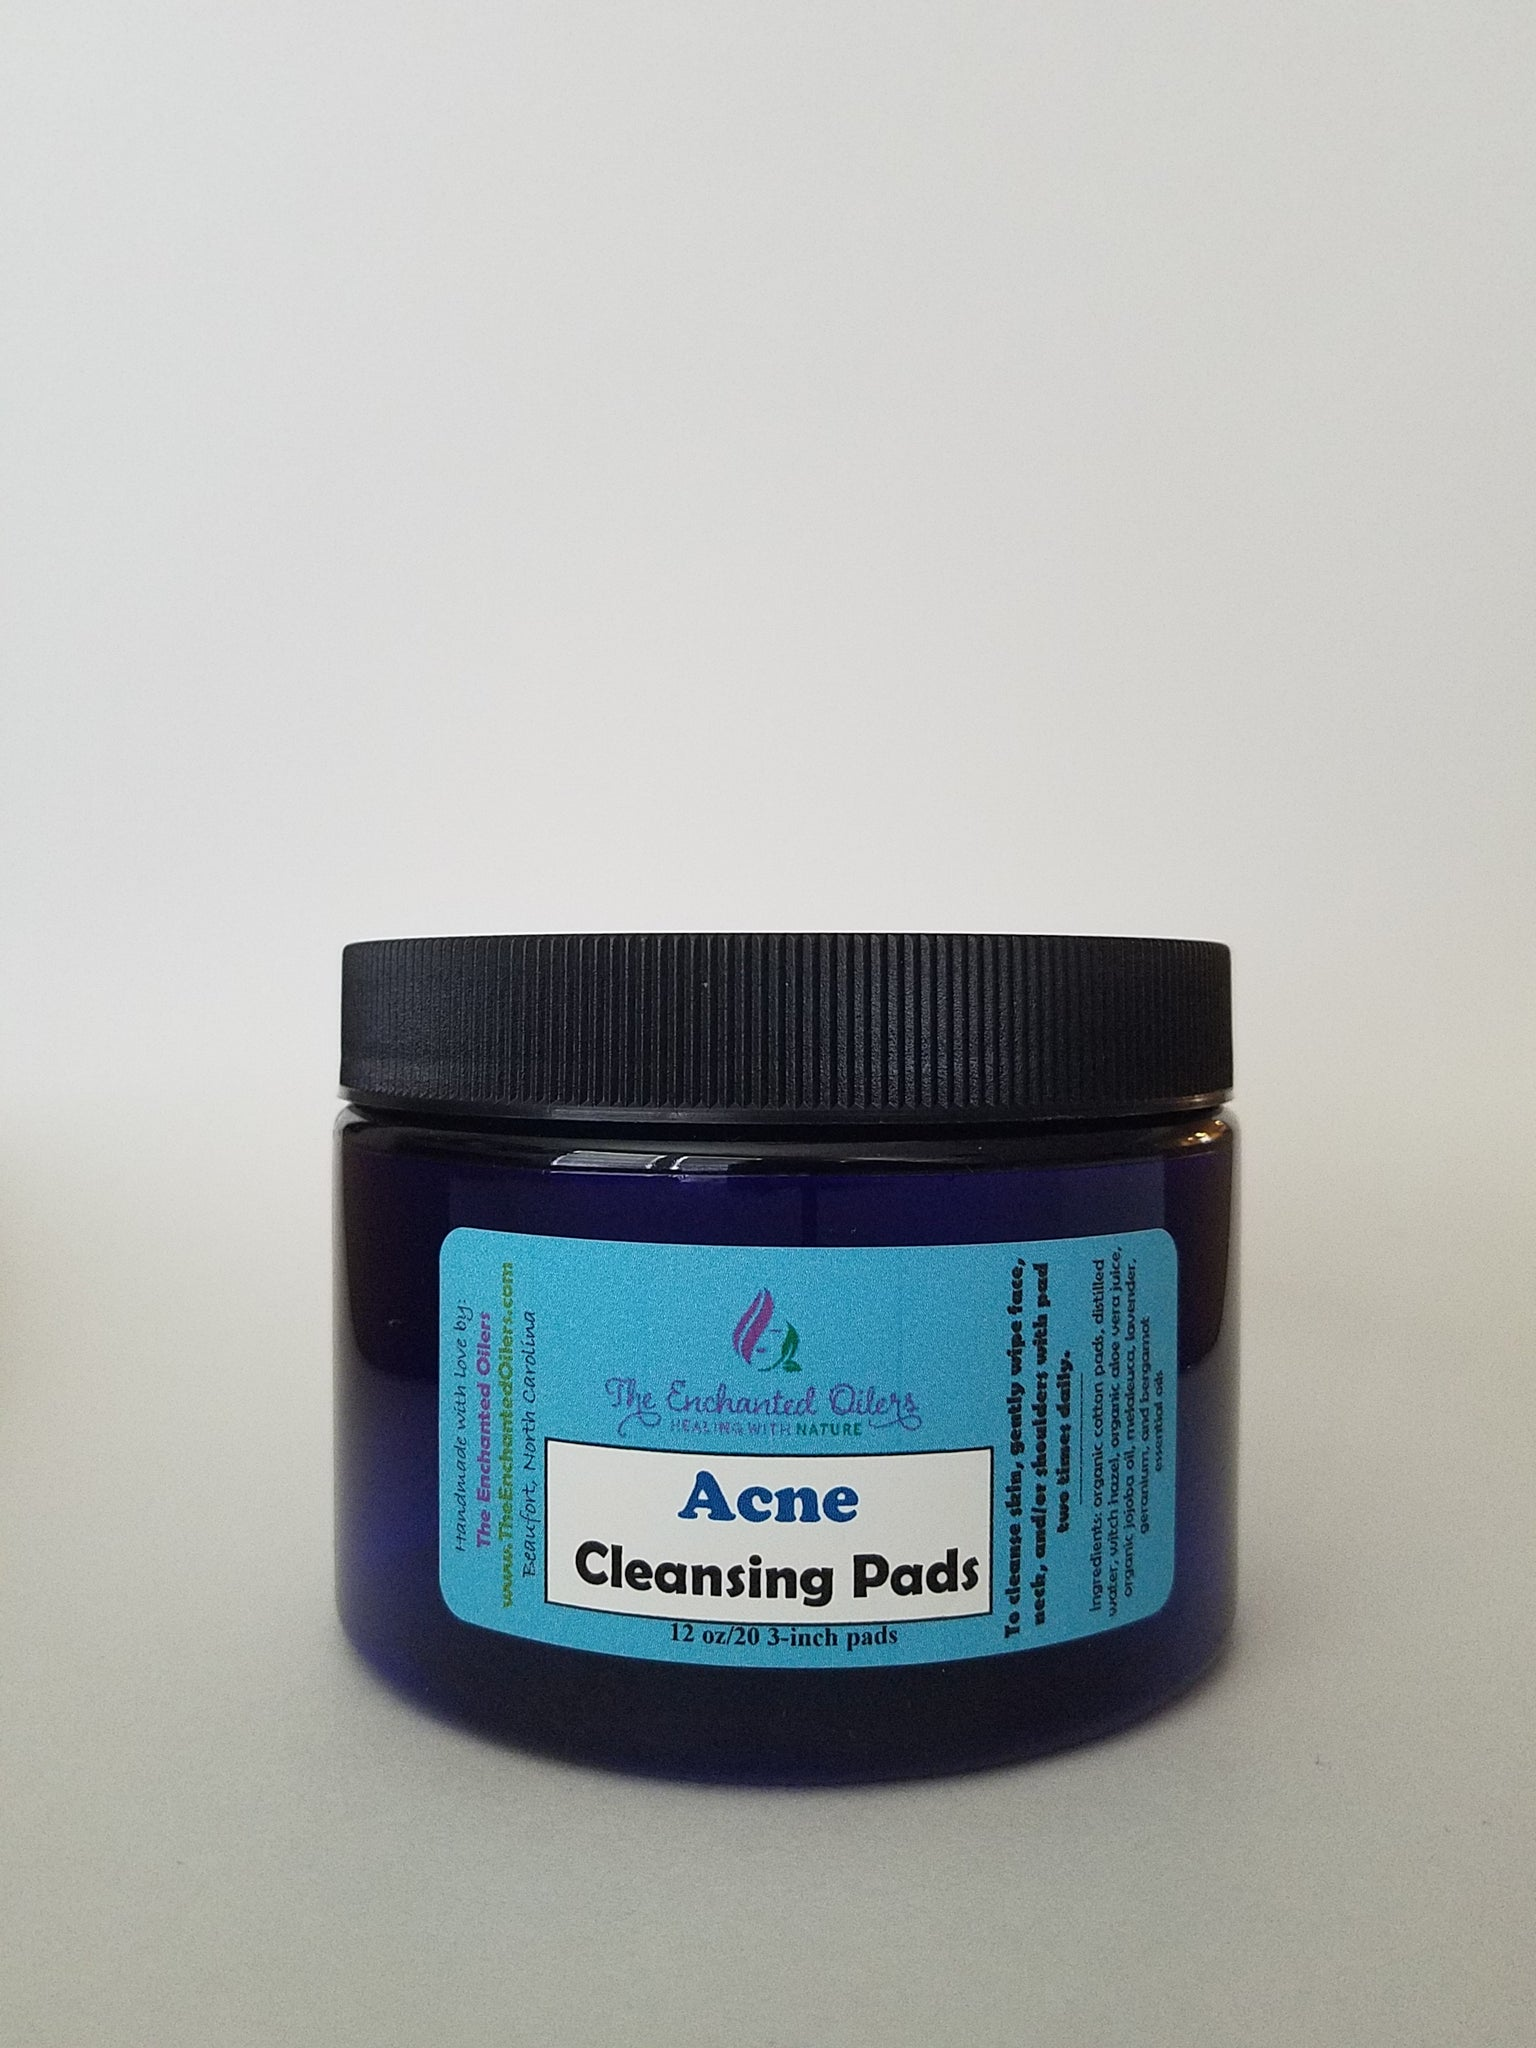 Acne Cleansing Pads